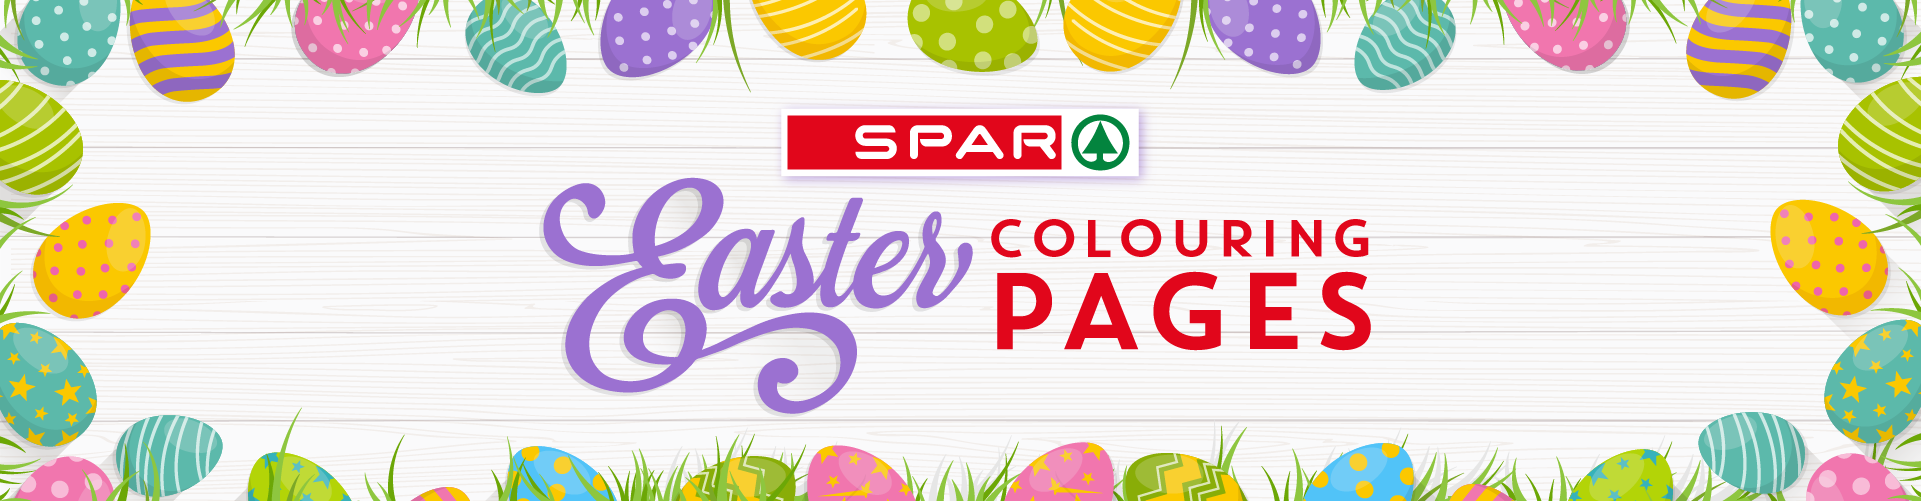 W540074 SPAR Easter Activity Pack Web Hdr 1920x500px.png